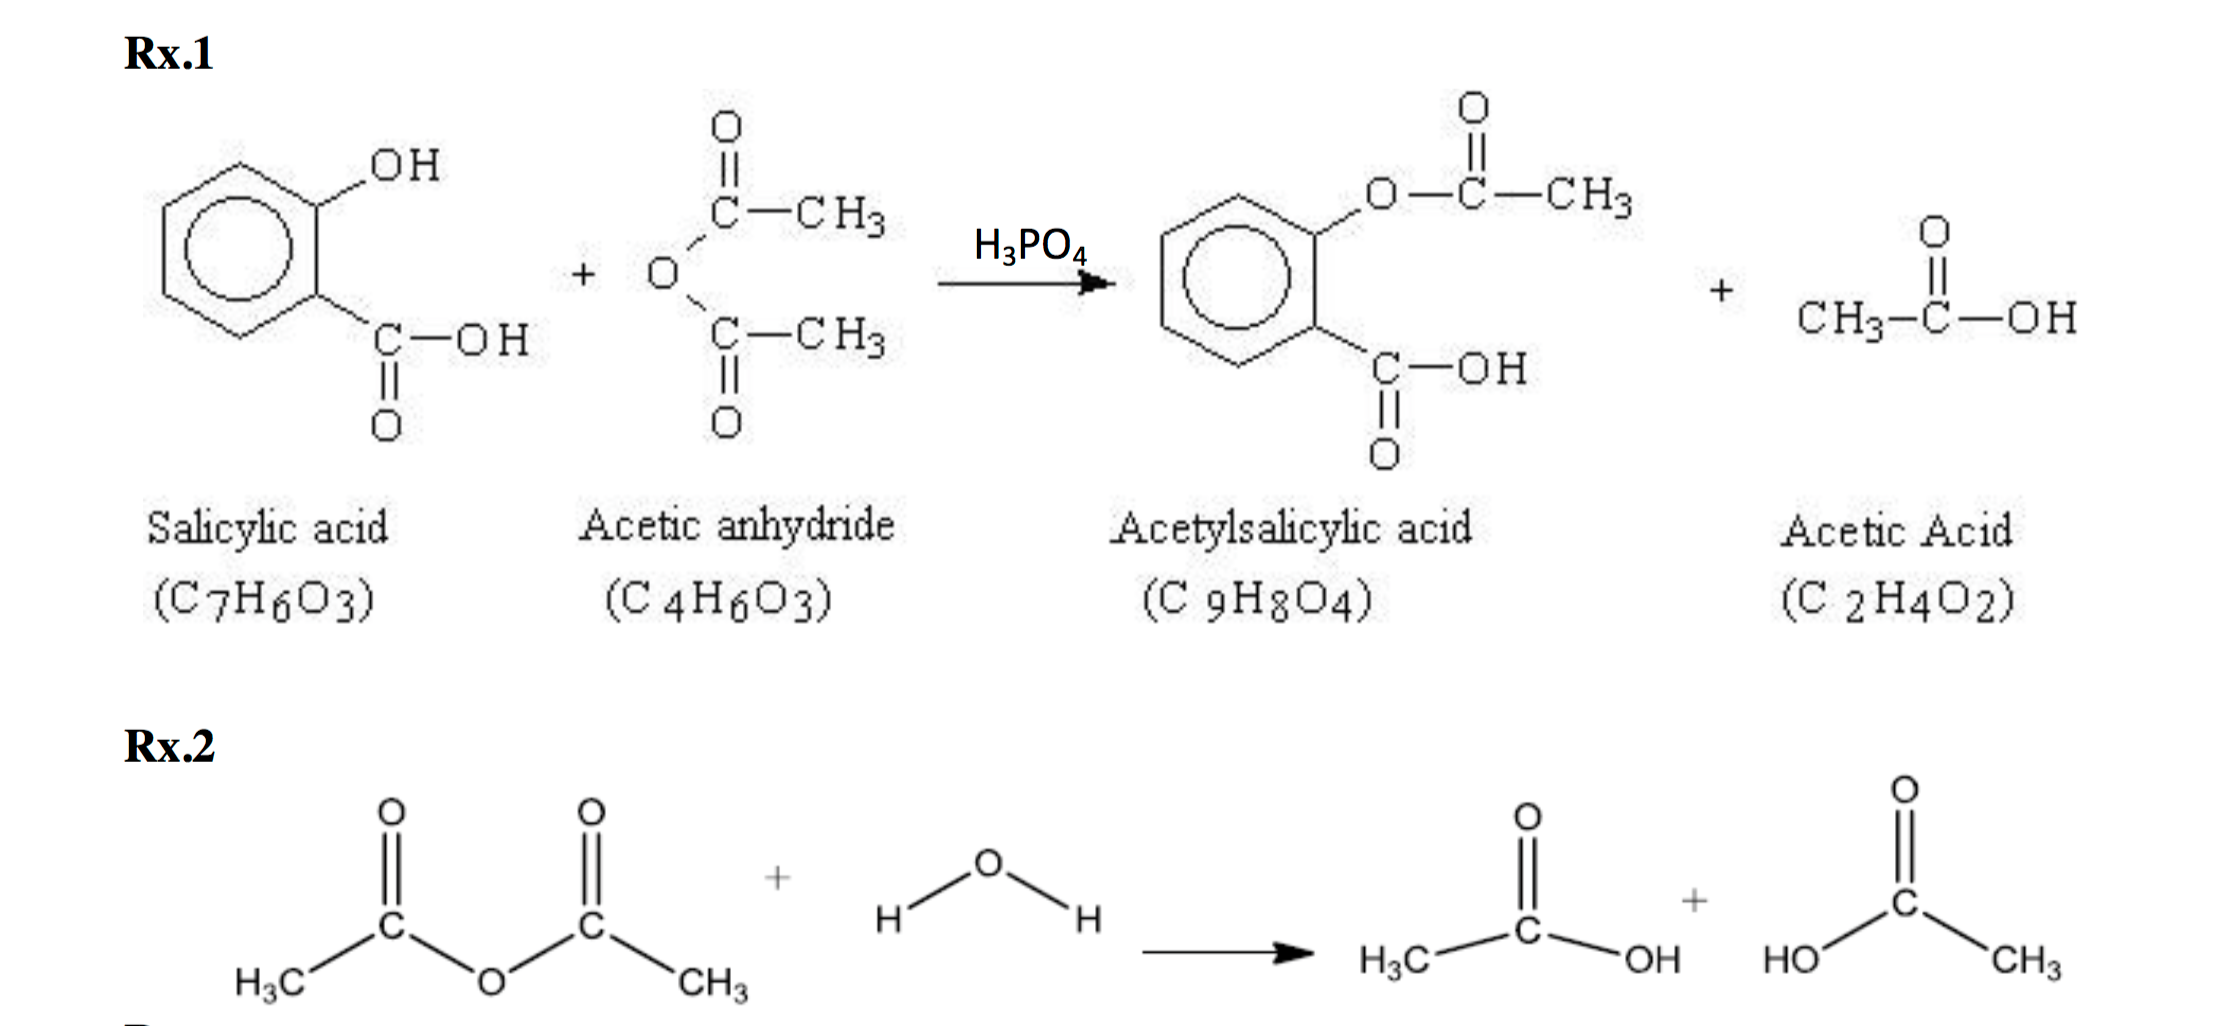 Question 1 What Is The Molar Ratio Of Acetic Anhydride To Salicylic Acid Used In Our Experiment Show Cal